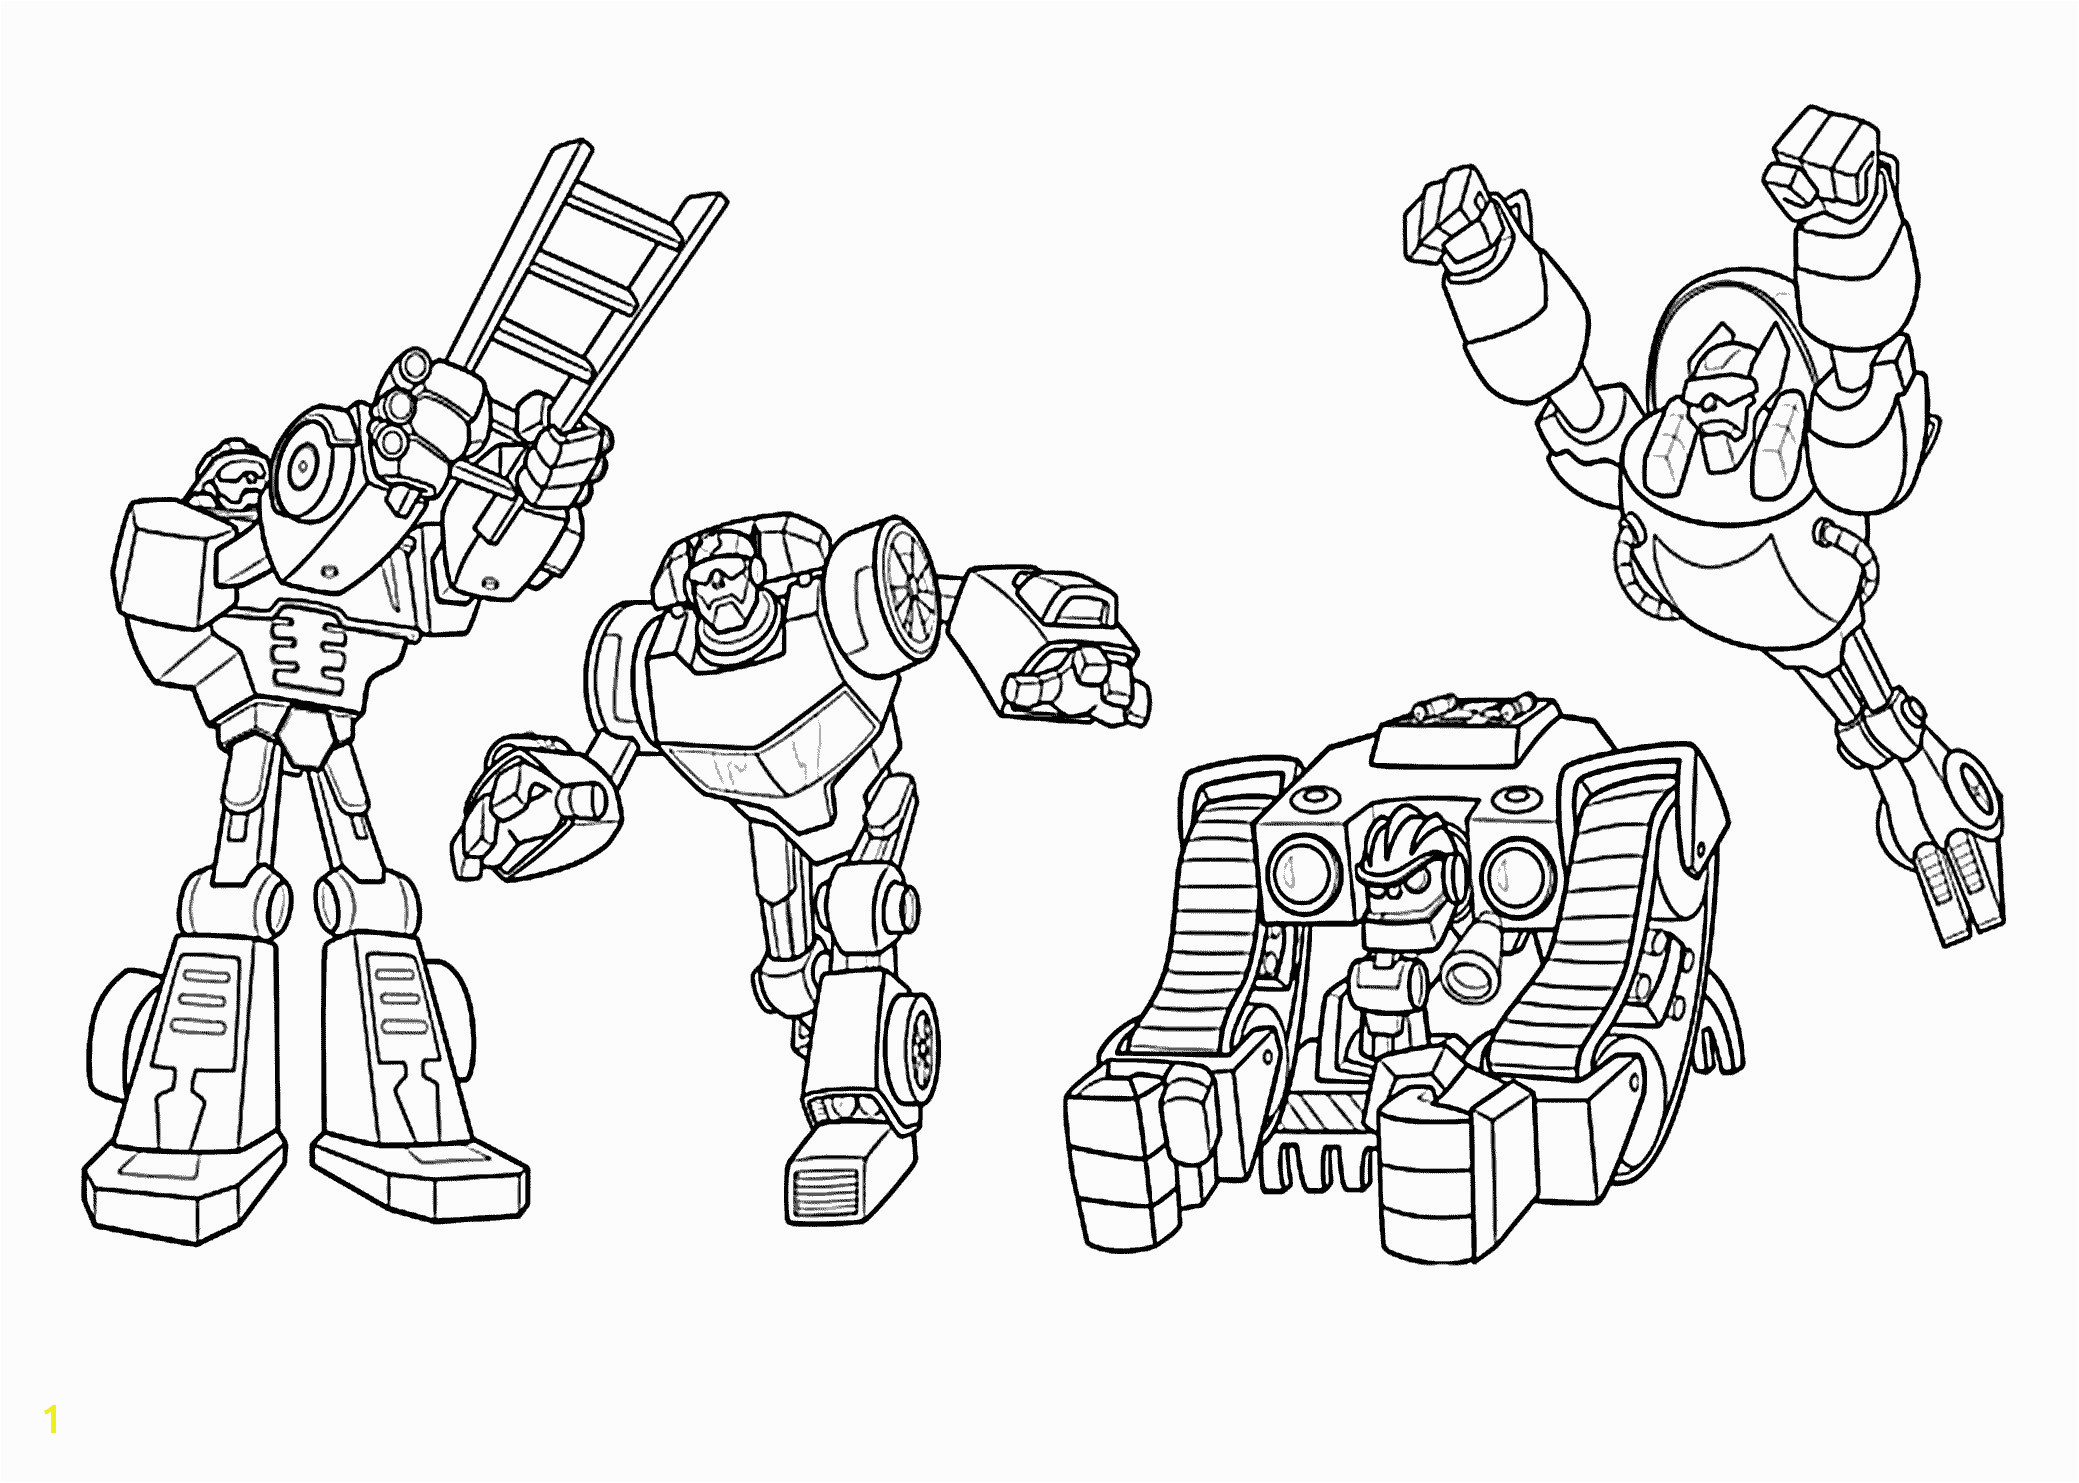 All Rescue Bots Coloring Pages For Kids Printable Free que